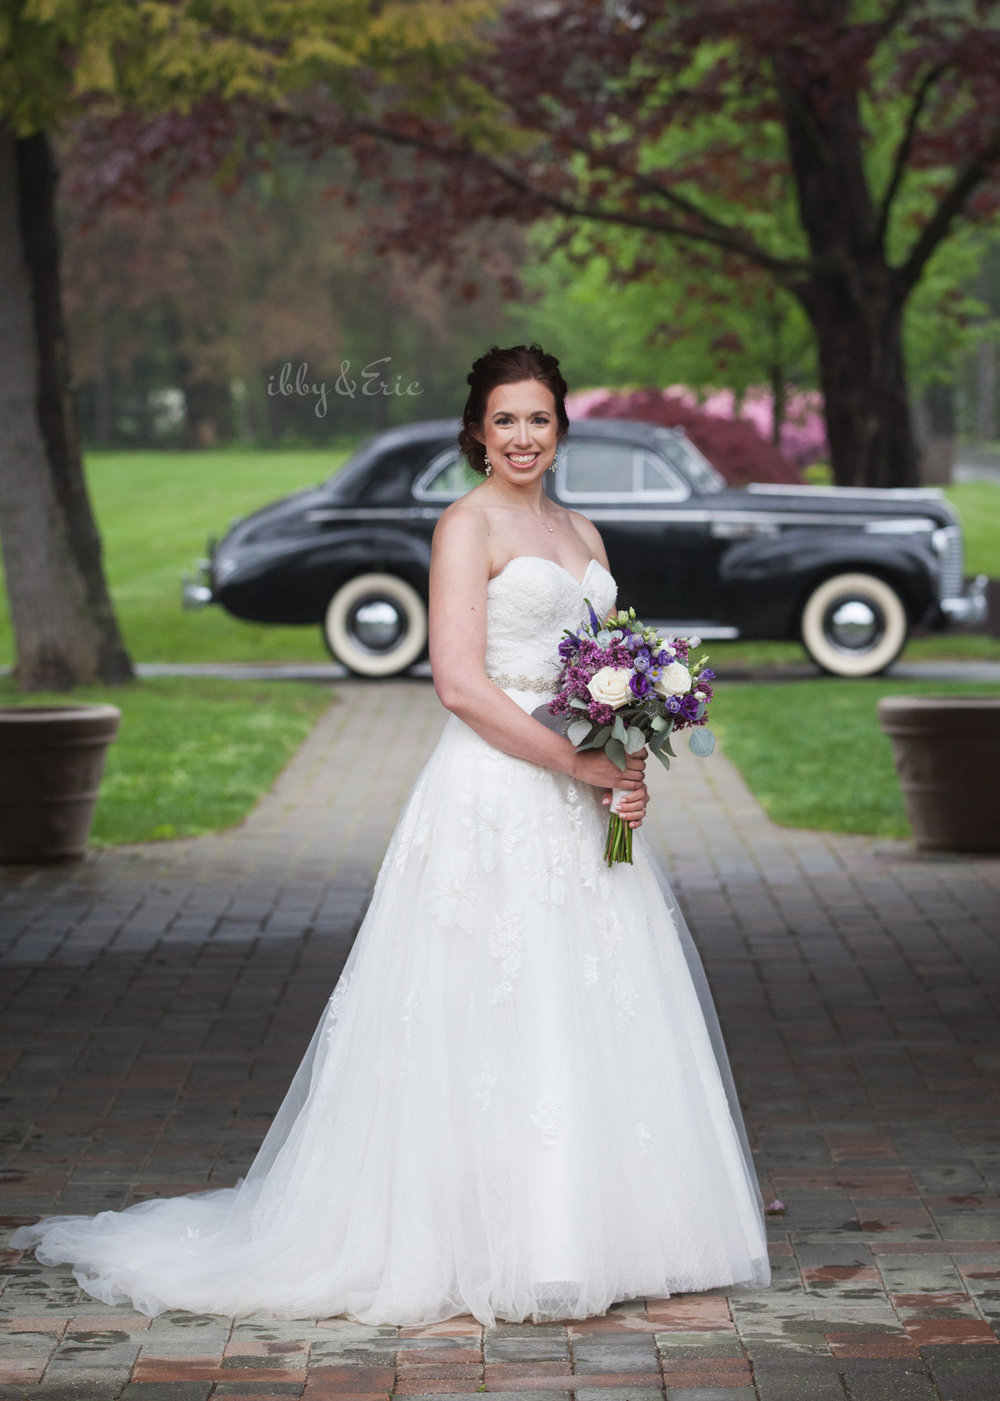 Smiling beautiful bride wearing a white lace wedding gown holds a purple bouquet in front of a vintage car.